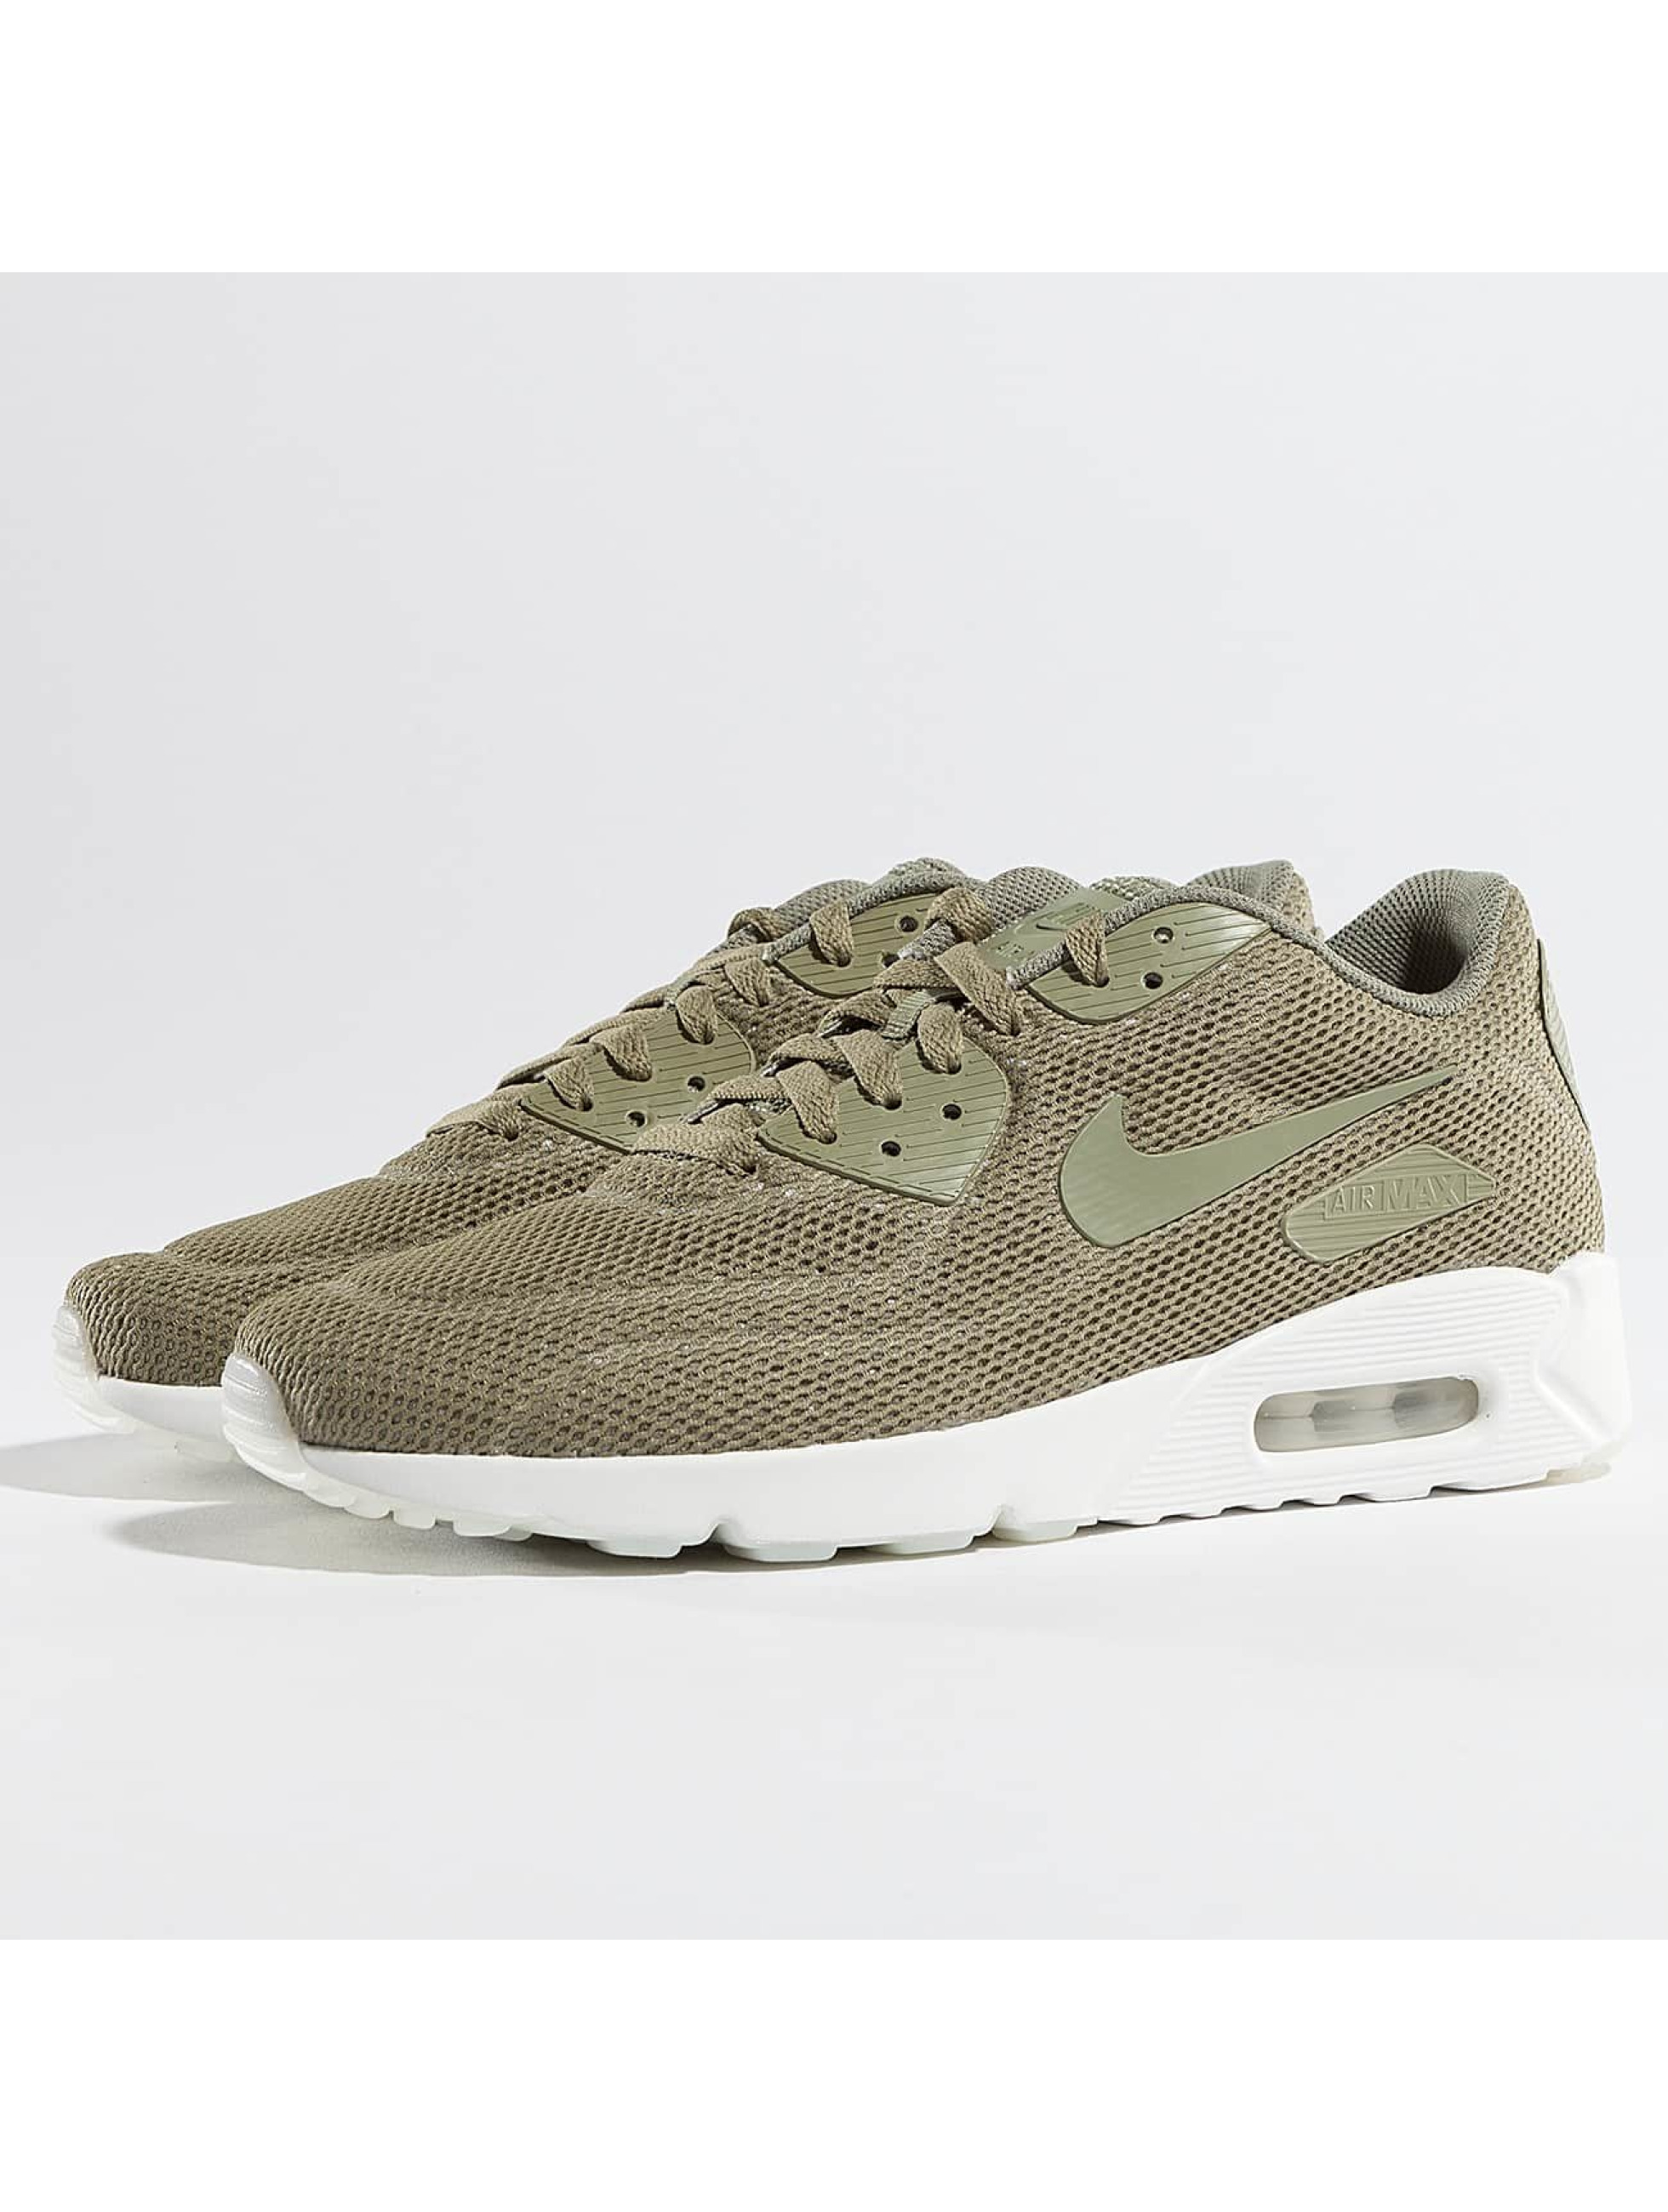 Sneaker Air Max 90 Ultra 2.0 BR in khaki